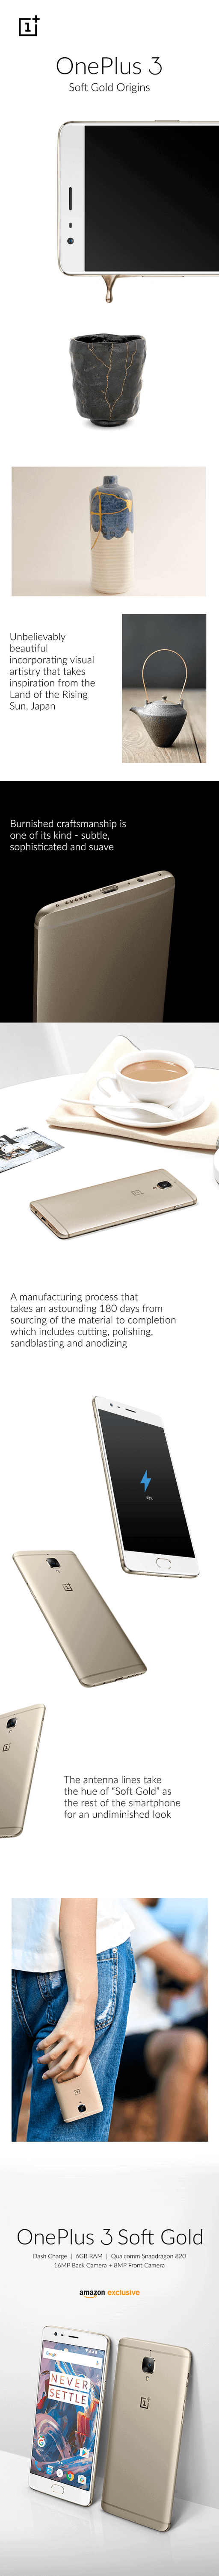 OnePlus 3 Soft Gold infographic